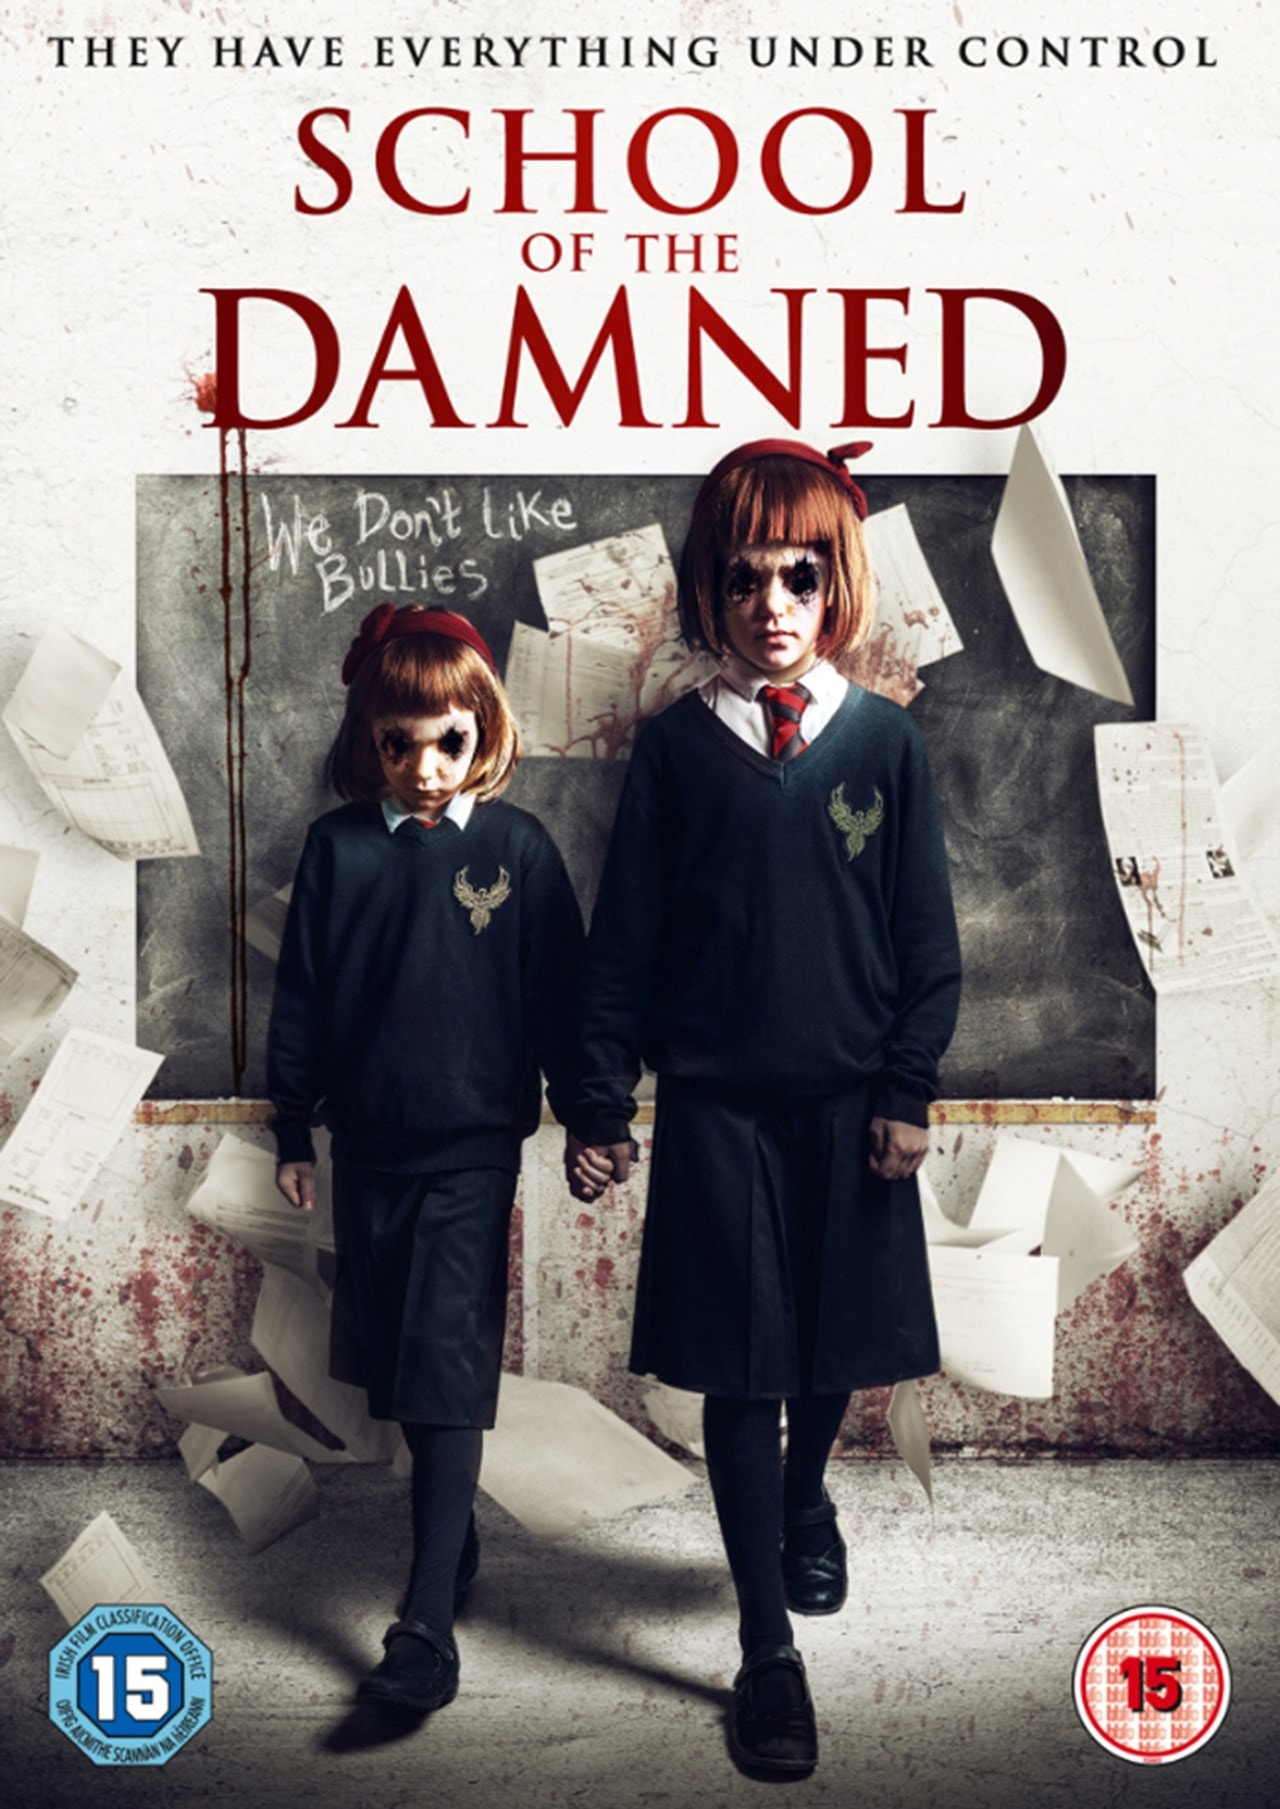 School of the Damned - 1